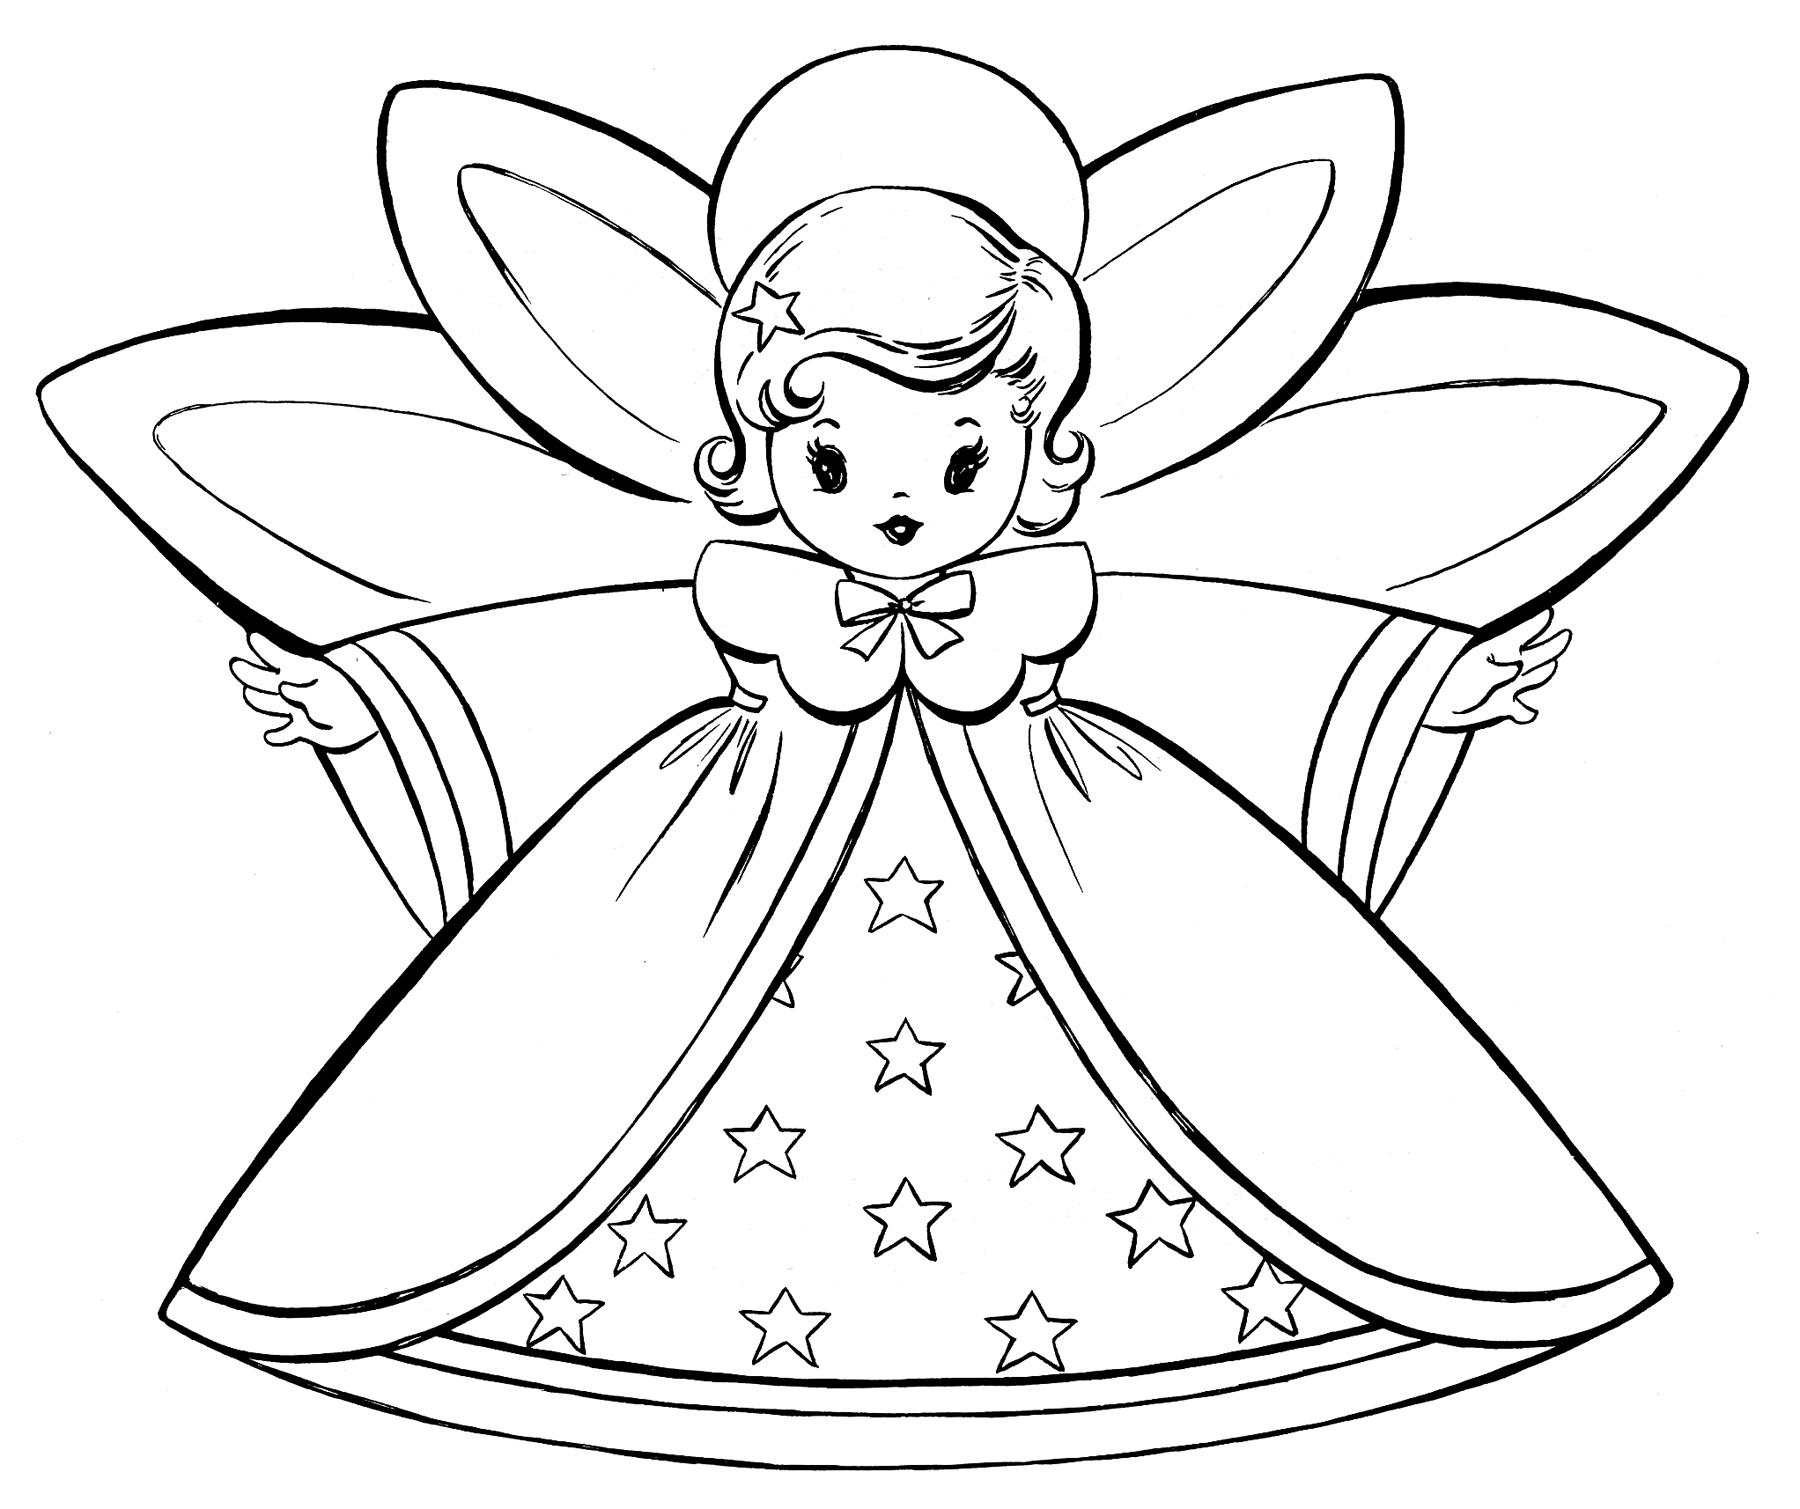 coloring sheets for christmas christmas colour by numbering hd wallpapers blog sheets coloring for christmas